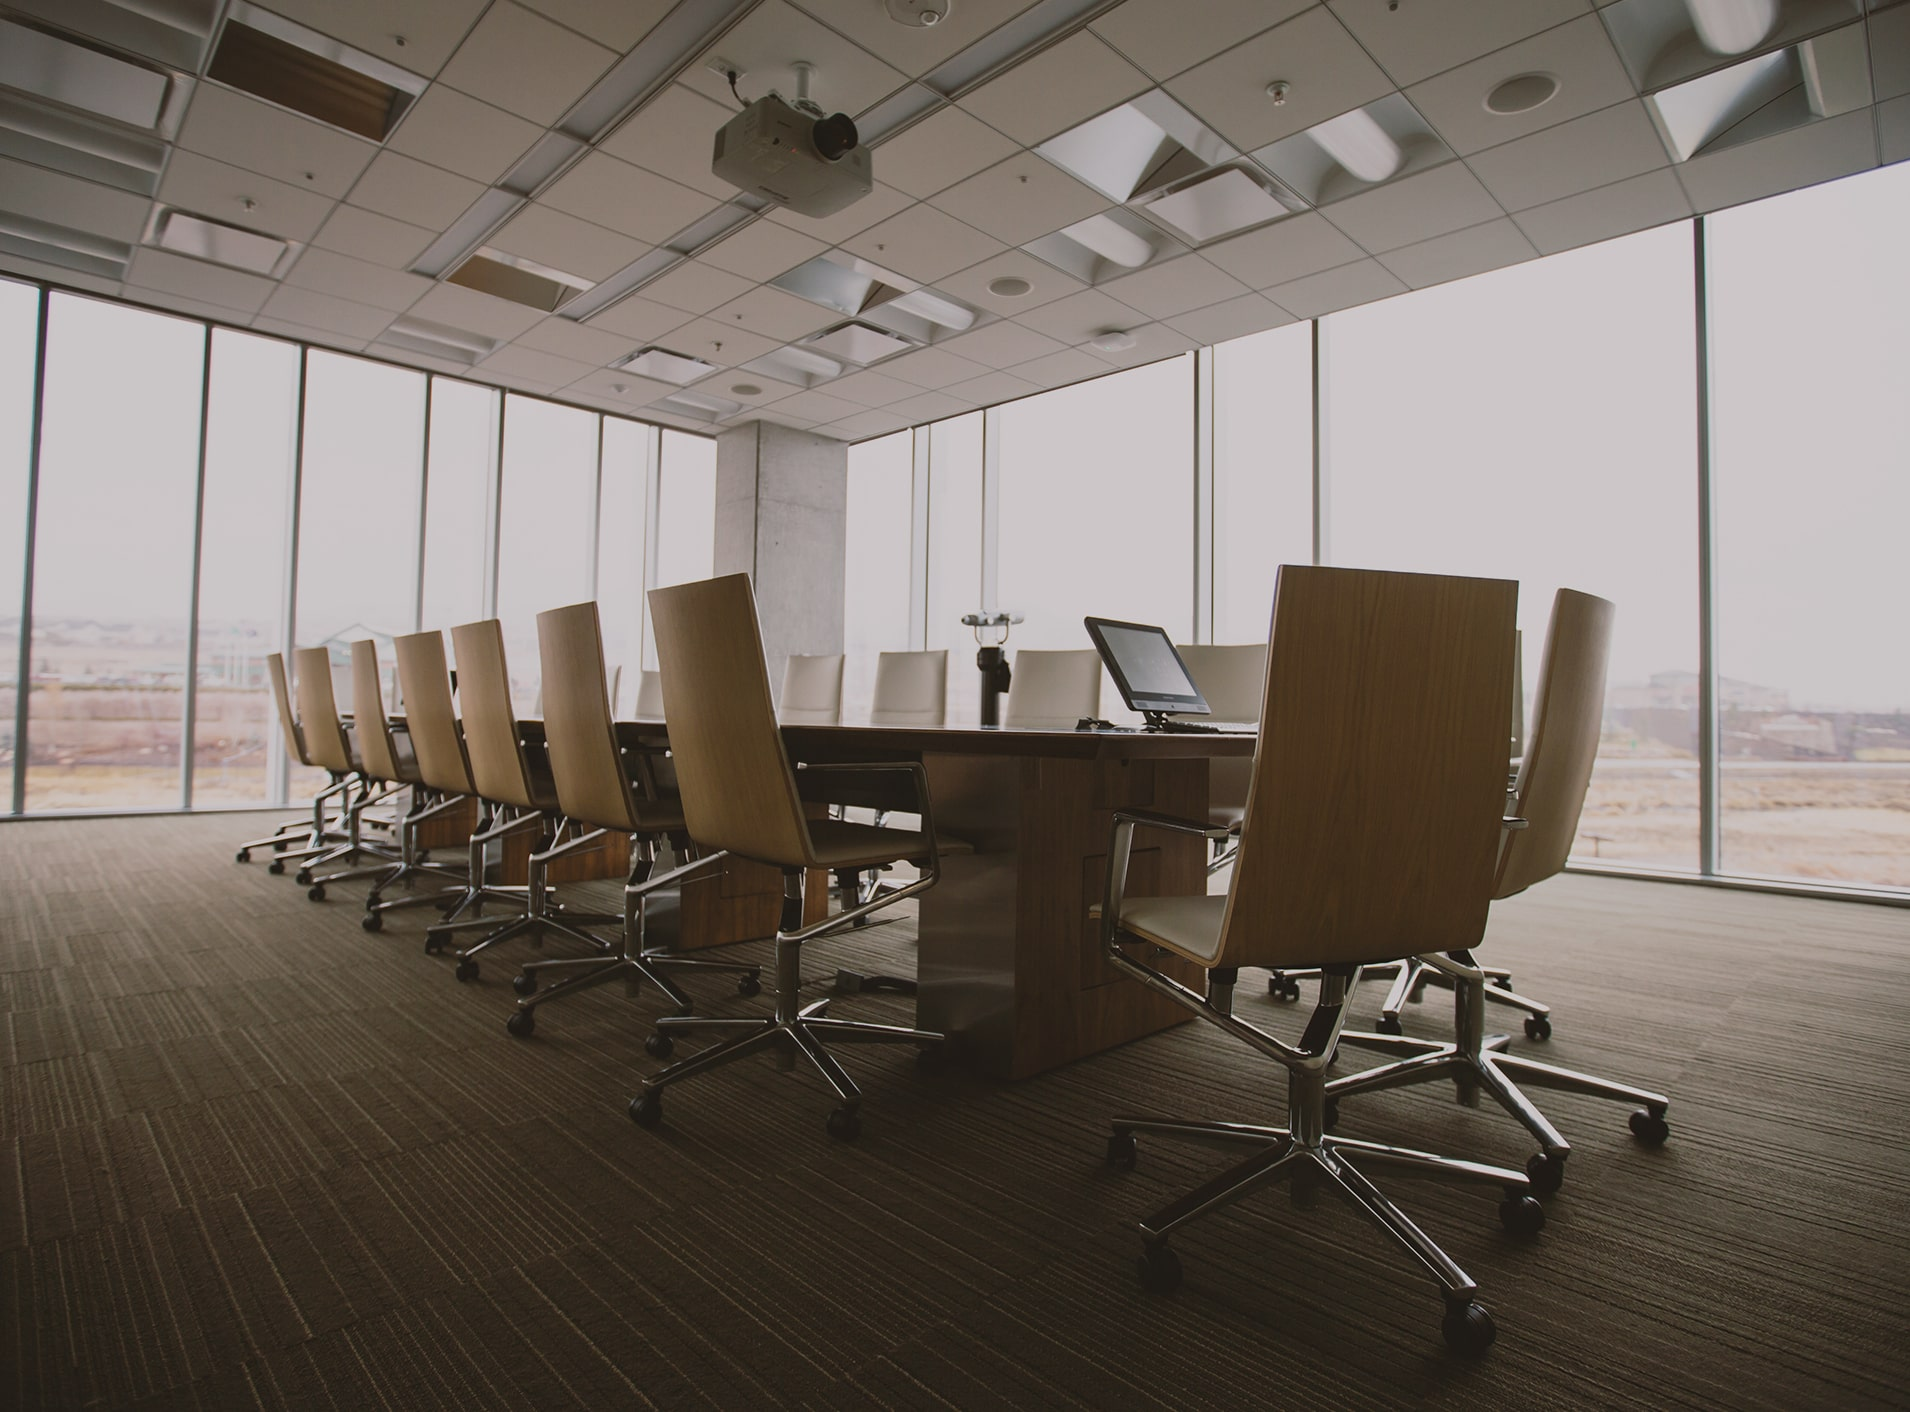 The featured image is a board room with multiple chairs. Click to learn more about Weyco and its relevant investor information.